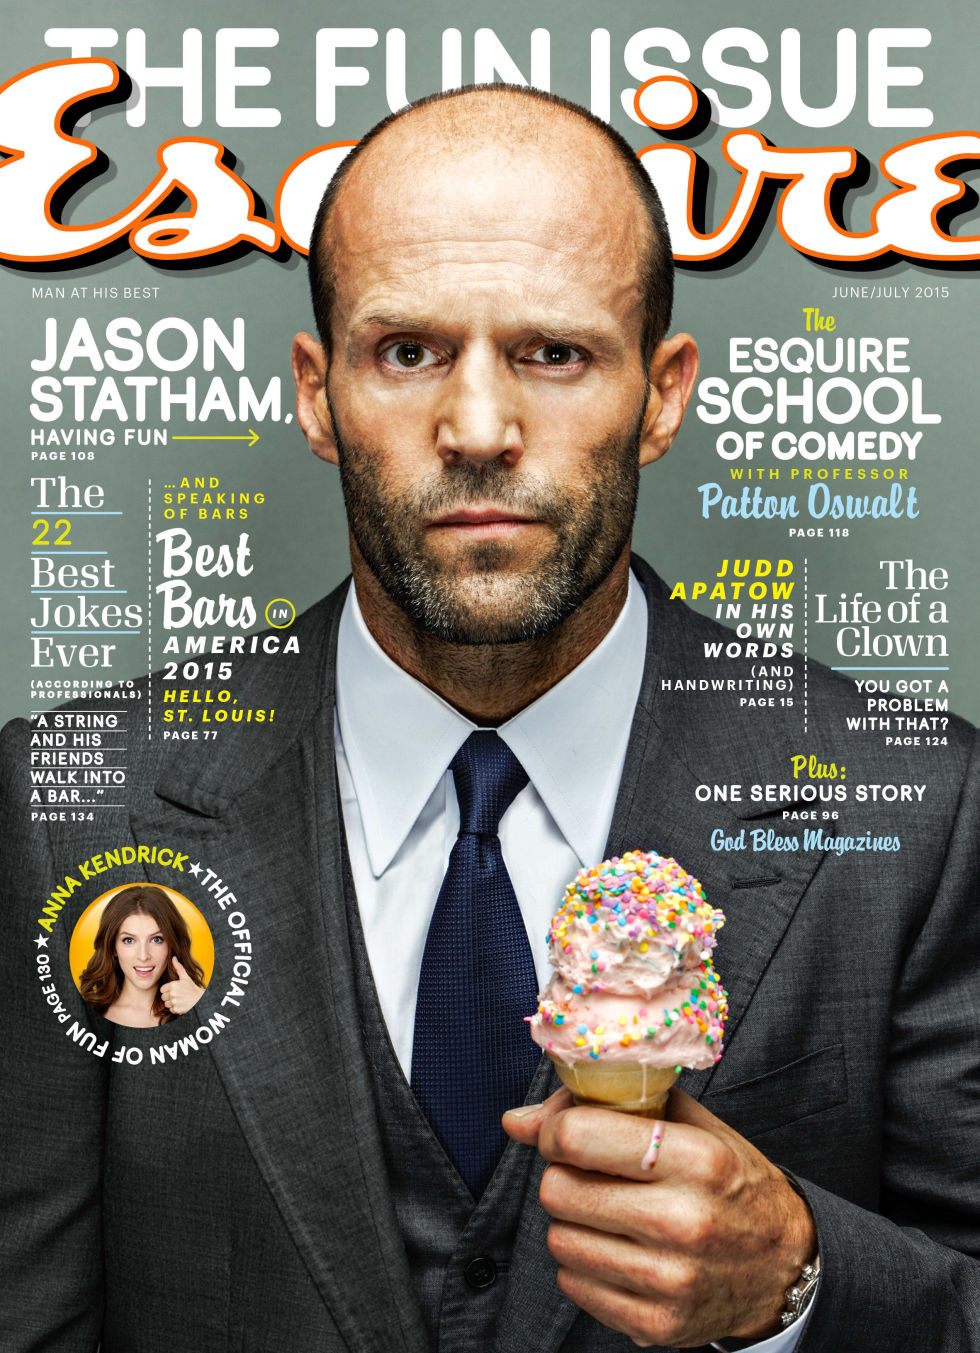 Jason Statham Covers June 2015 Esquire, Talks 'Spy' Movie